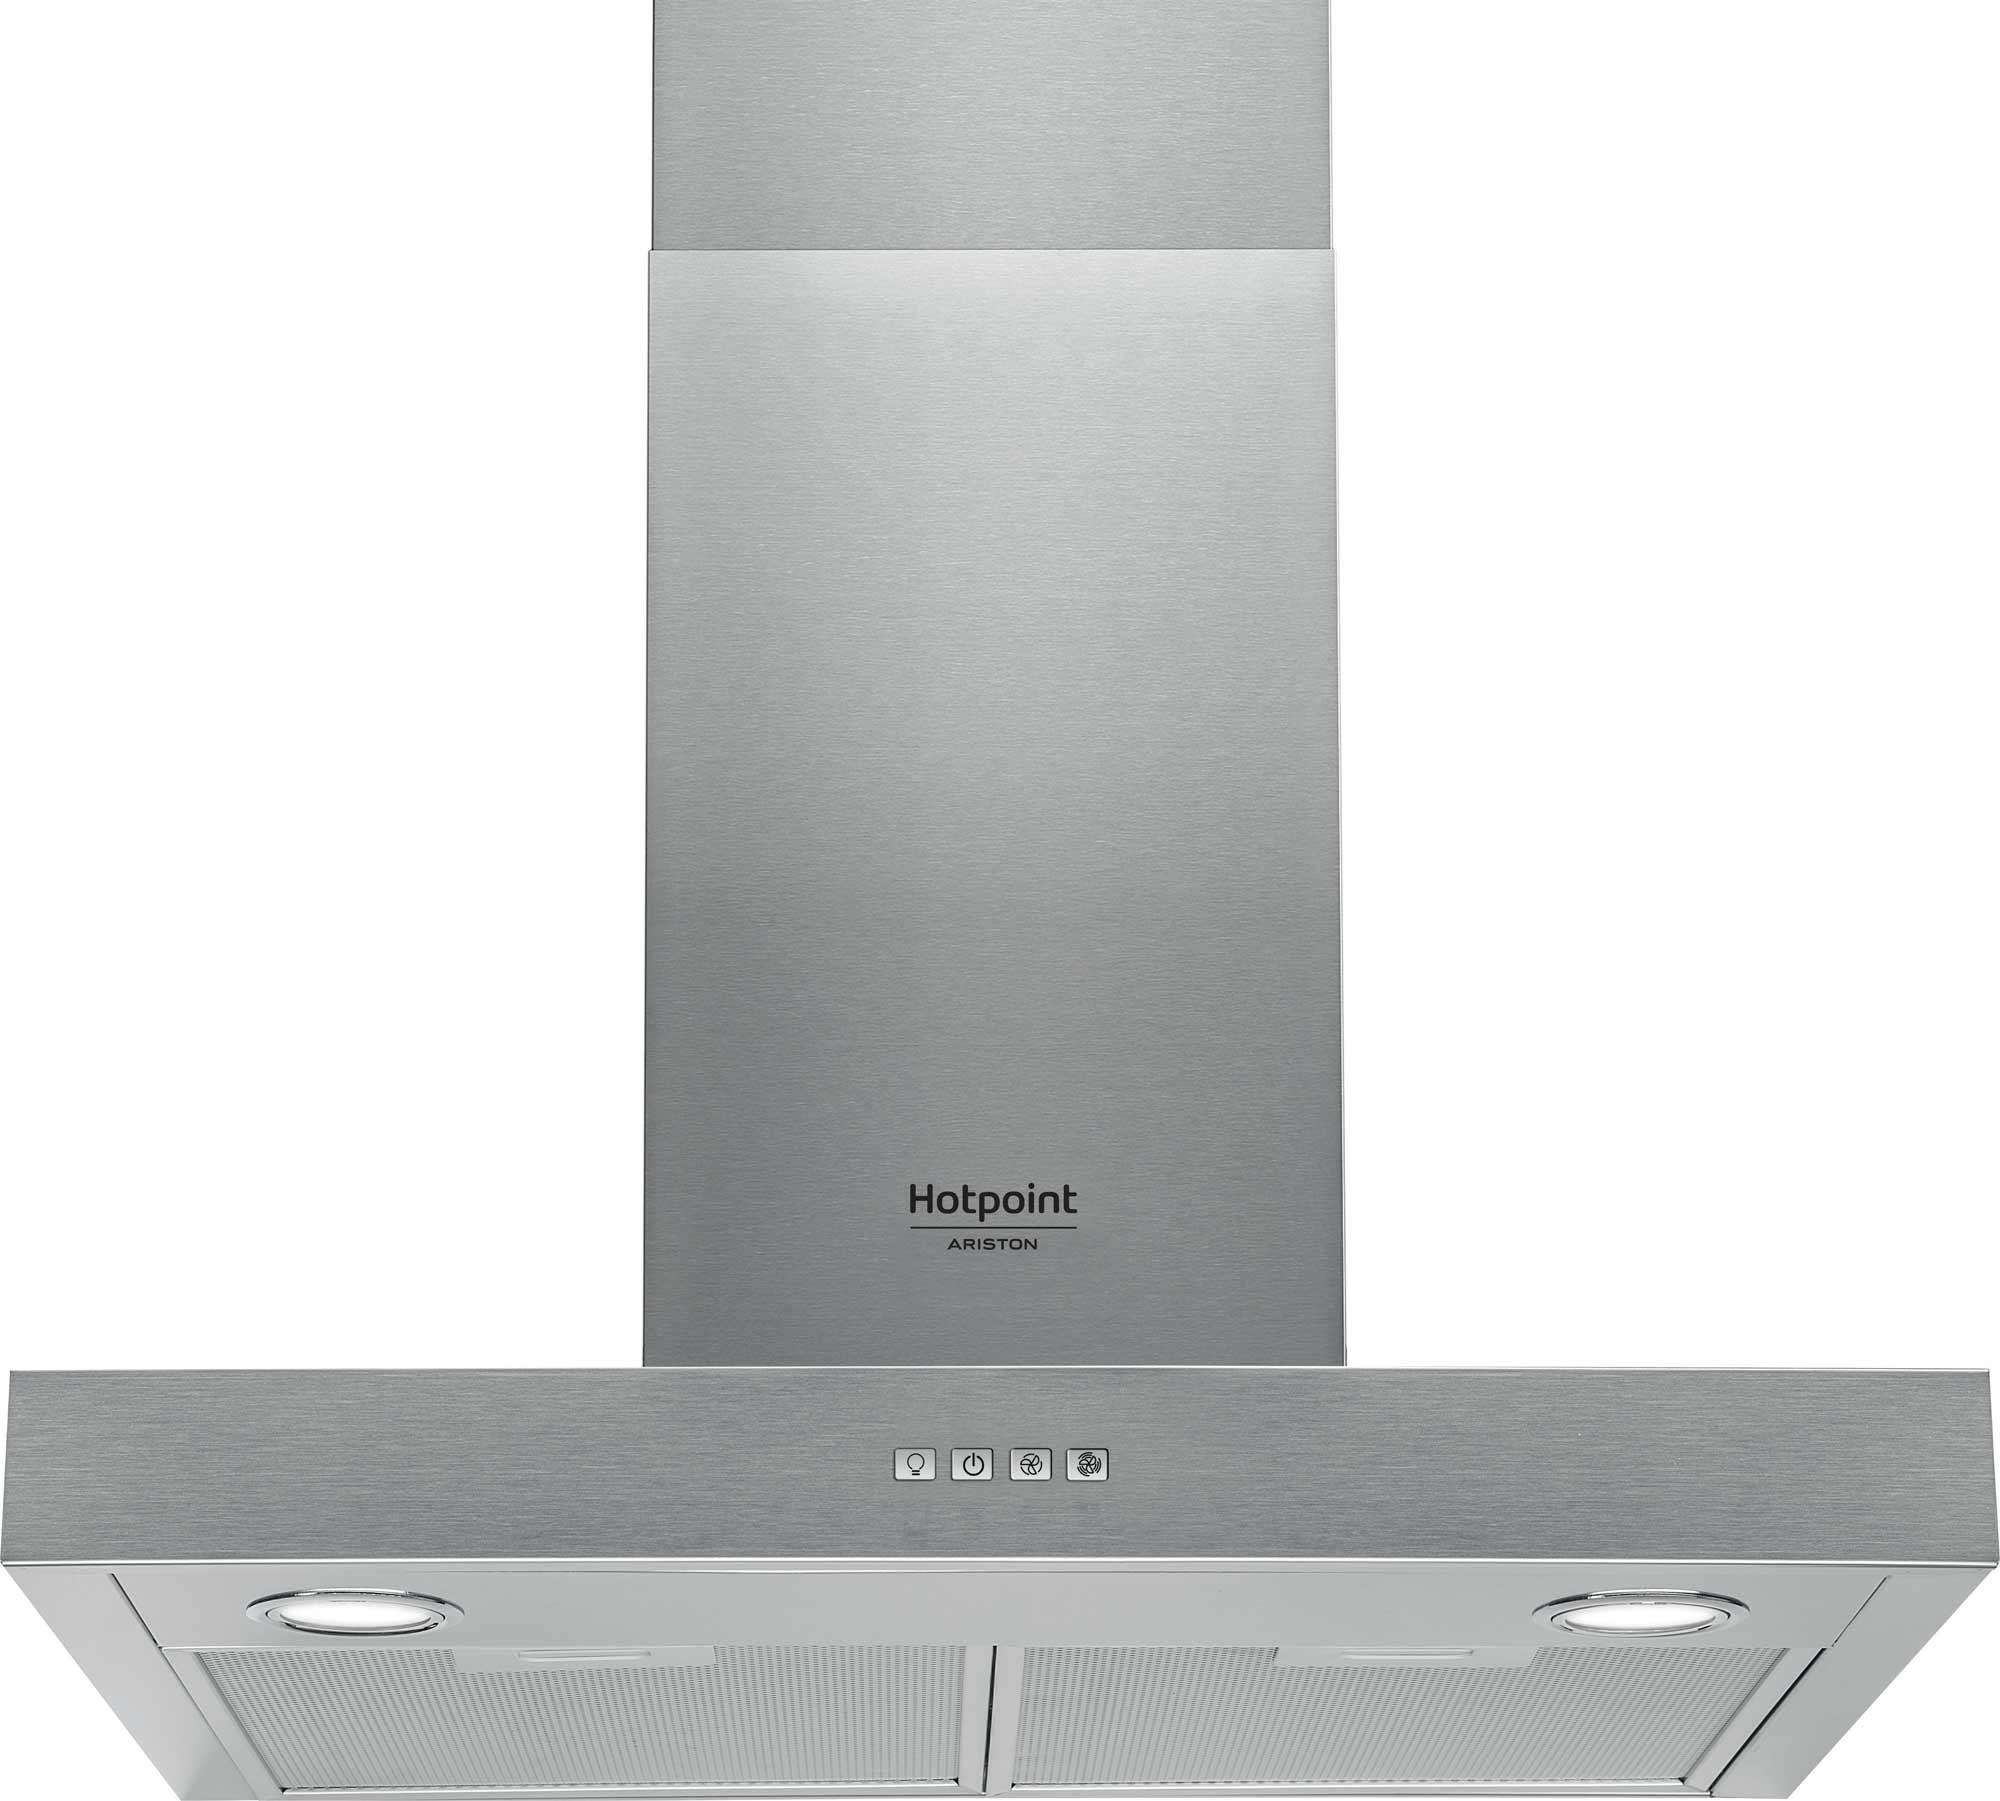 HOTPOINT-ARISTON - HHBS 6.5 F AM X